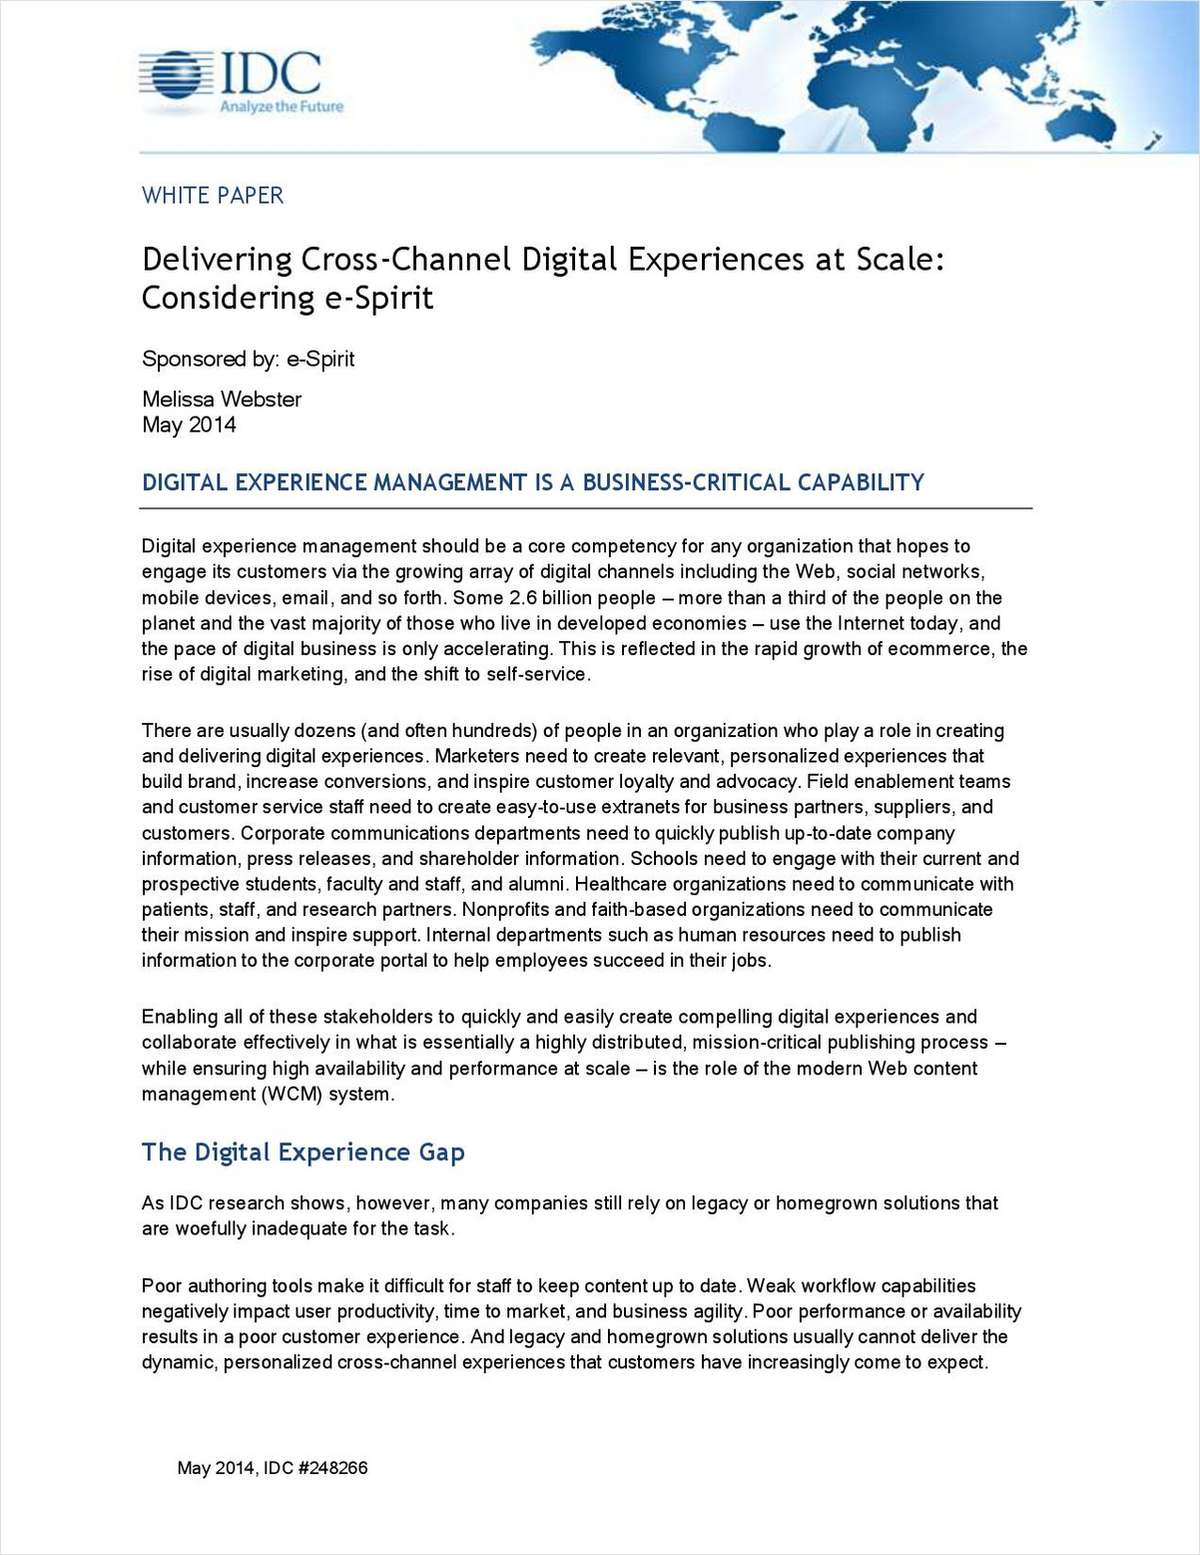 Delivering Cross-Channel Digital Experiences at Scale